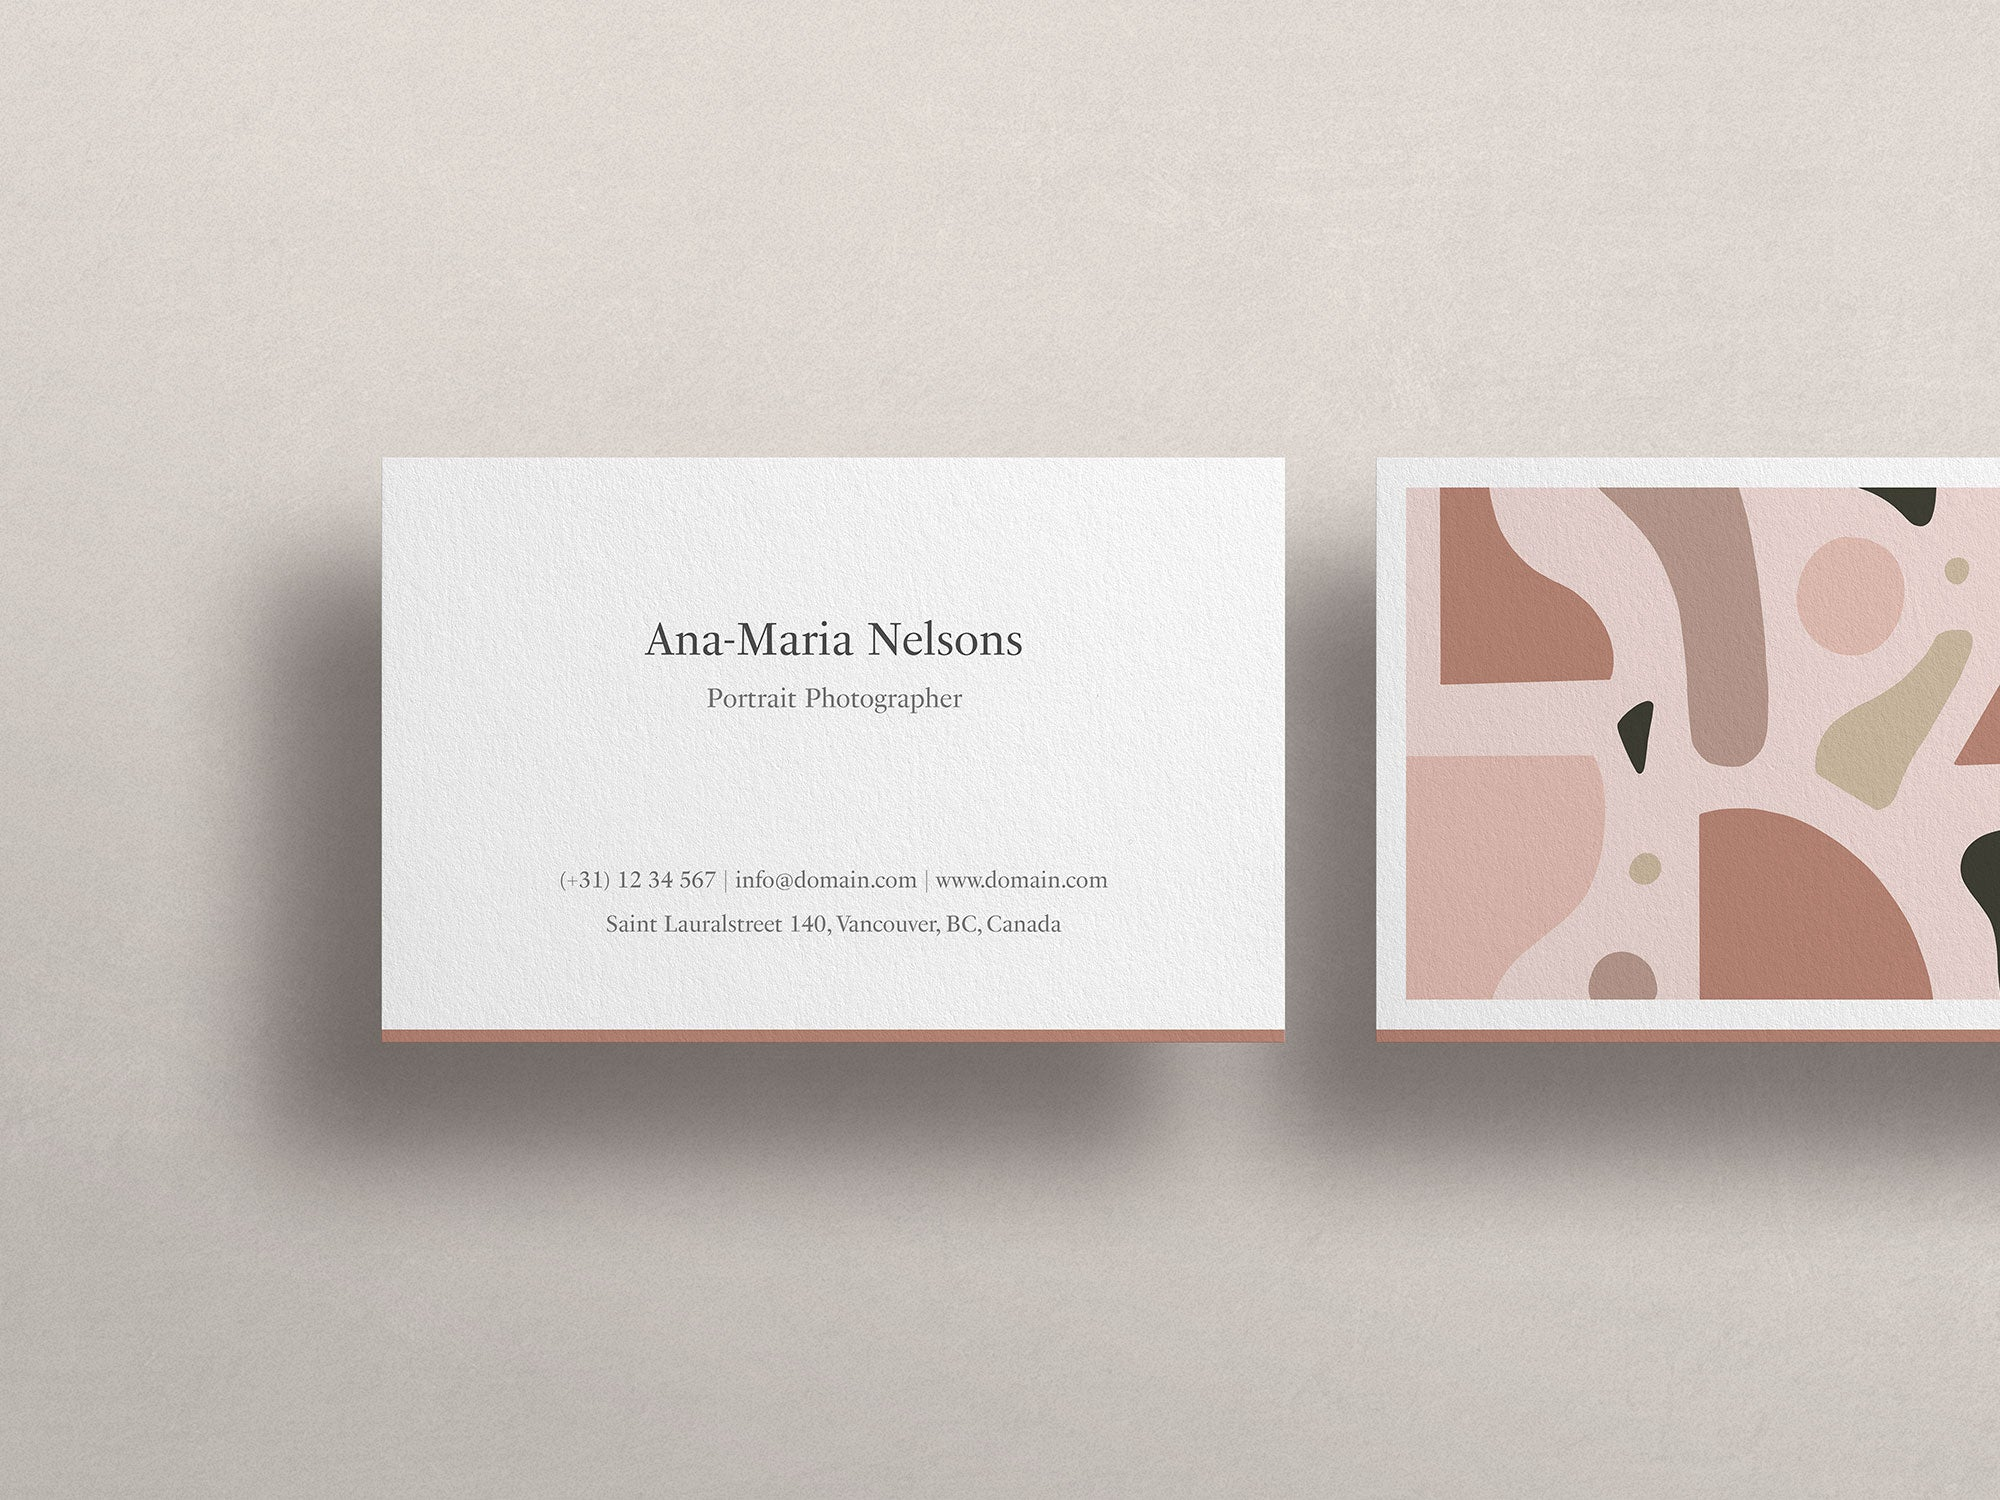 An example of a business card with a distinctive brand identity (product used as showcase: Business Card Mockup Kit).